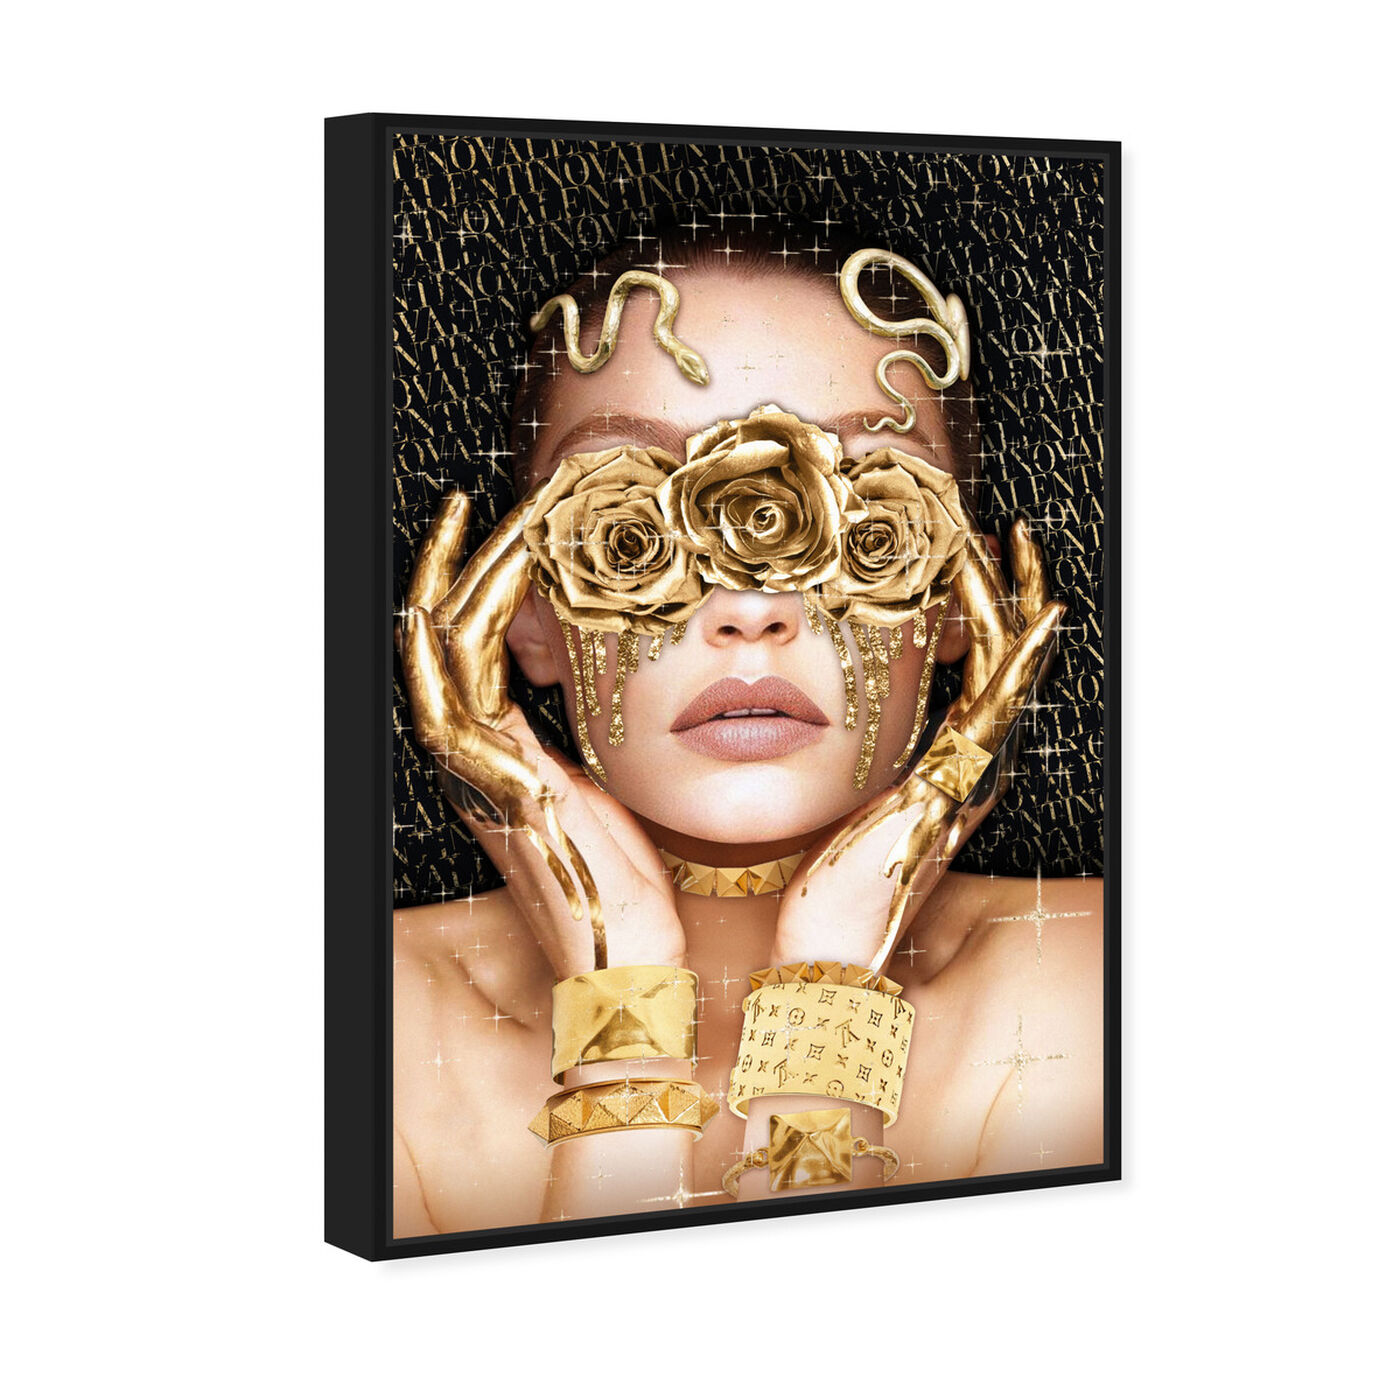 Angled view of Golden Romantic featuring fashion and glam and portraits art.